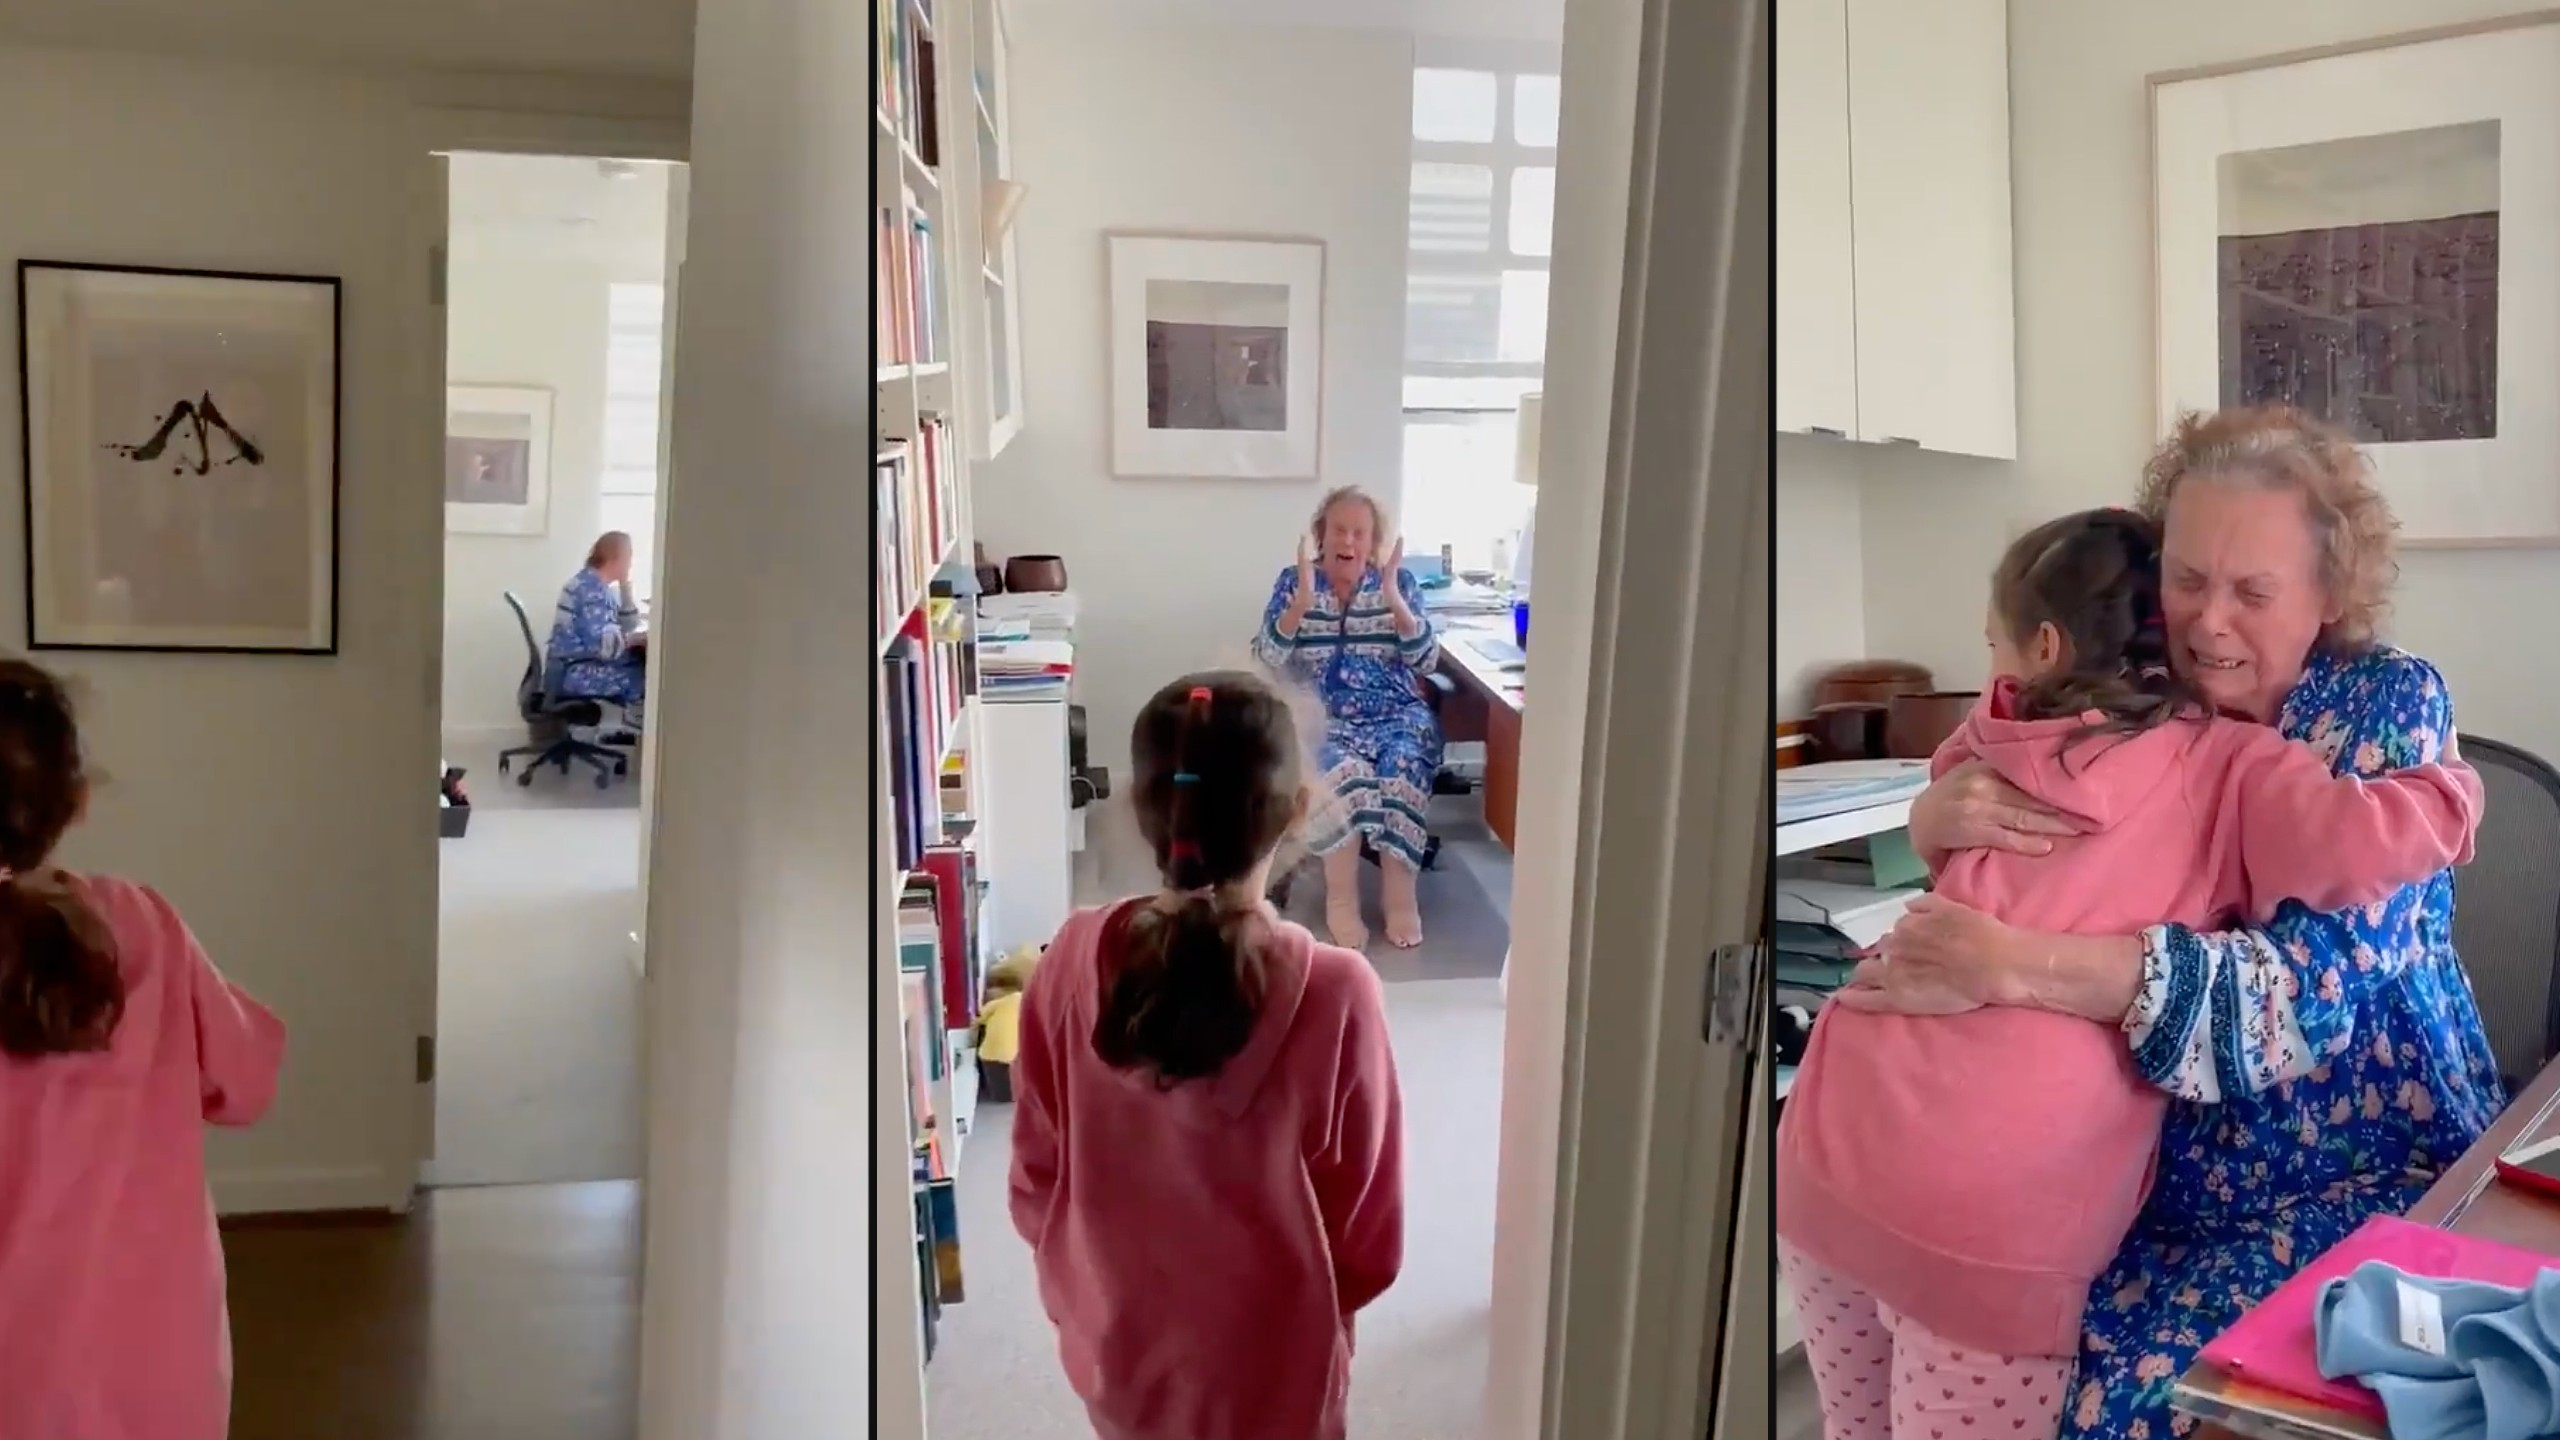 Dad captures touching grandma granddaughter reunion